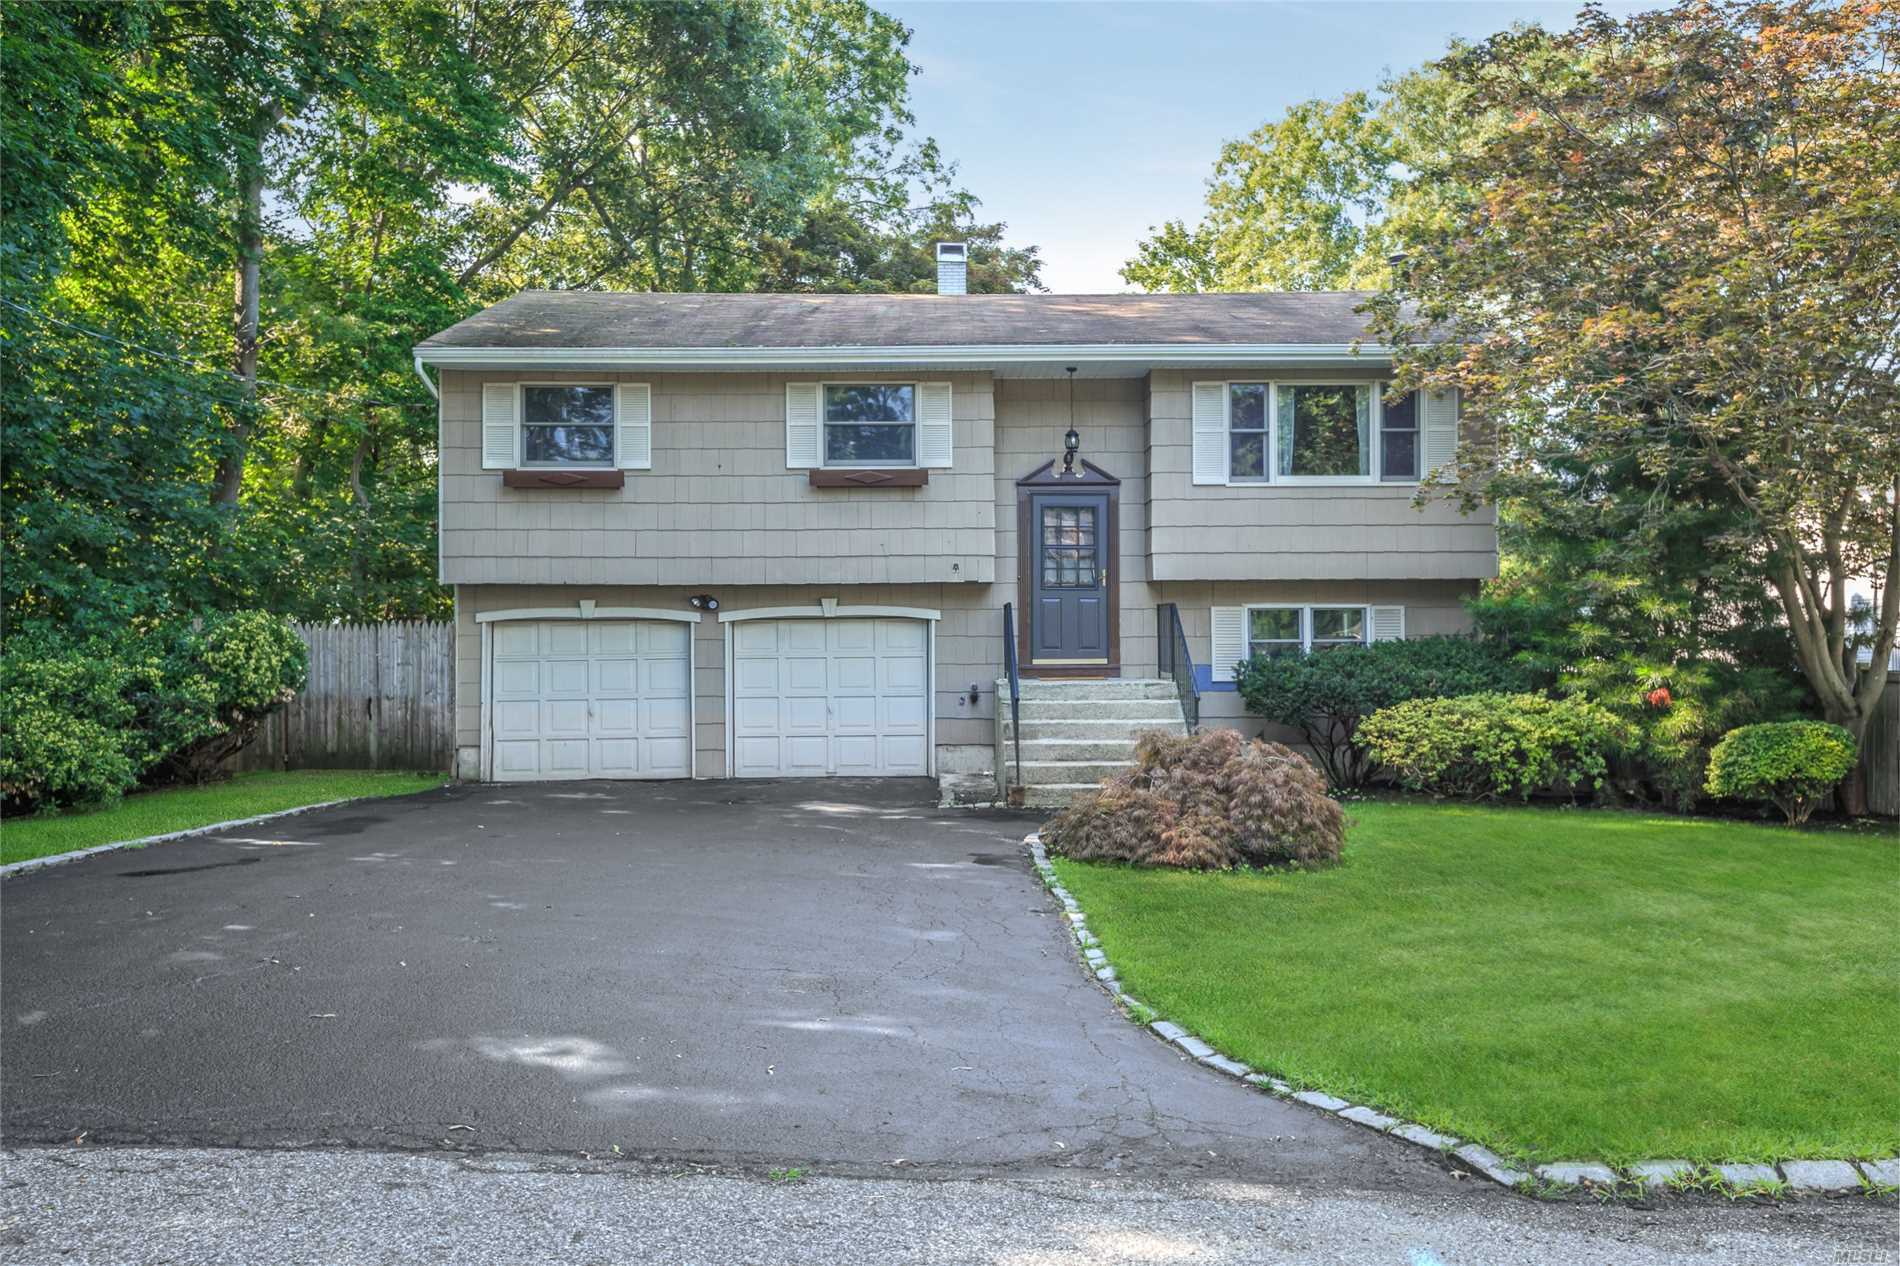 226 Wildwood Rd - Ronkonkoma, New York